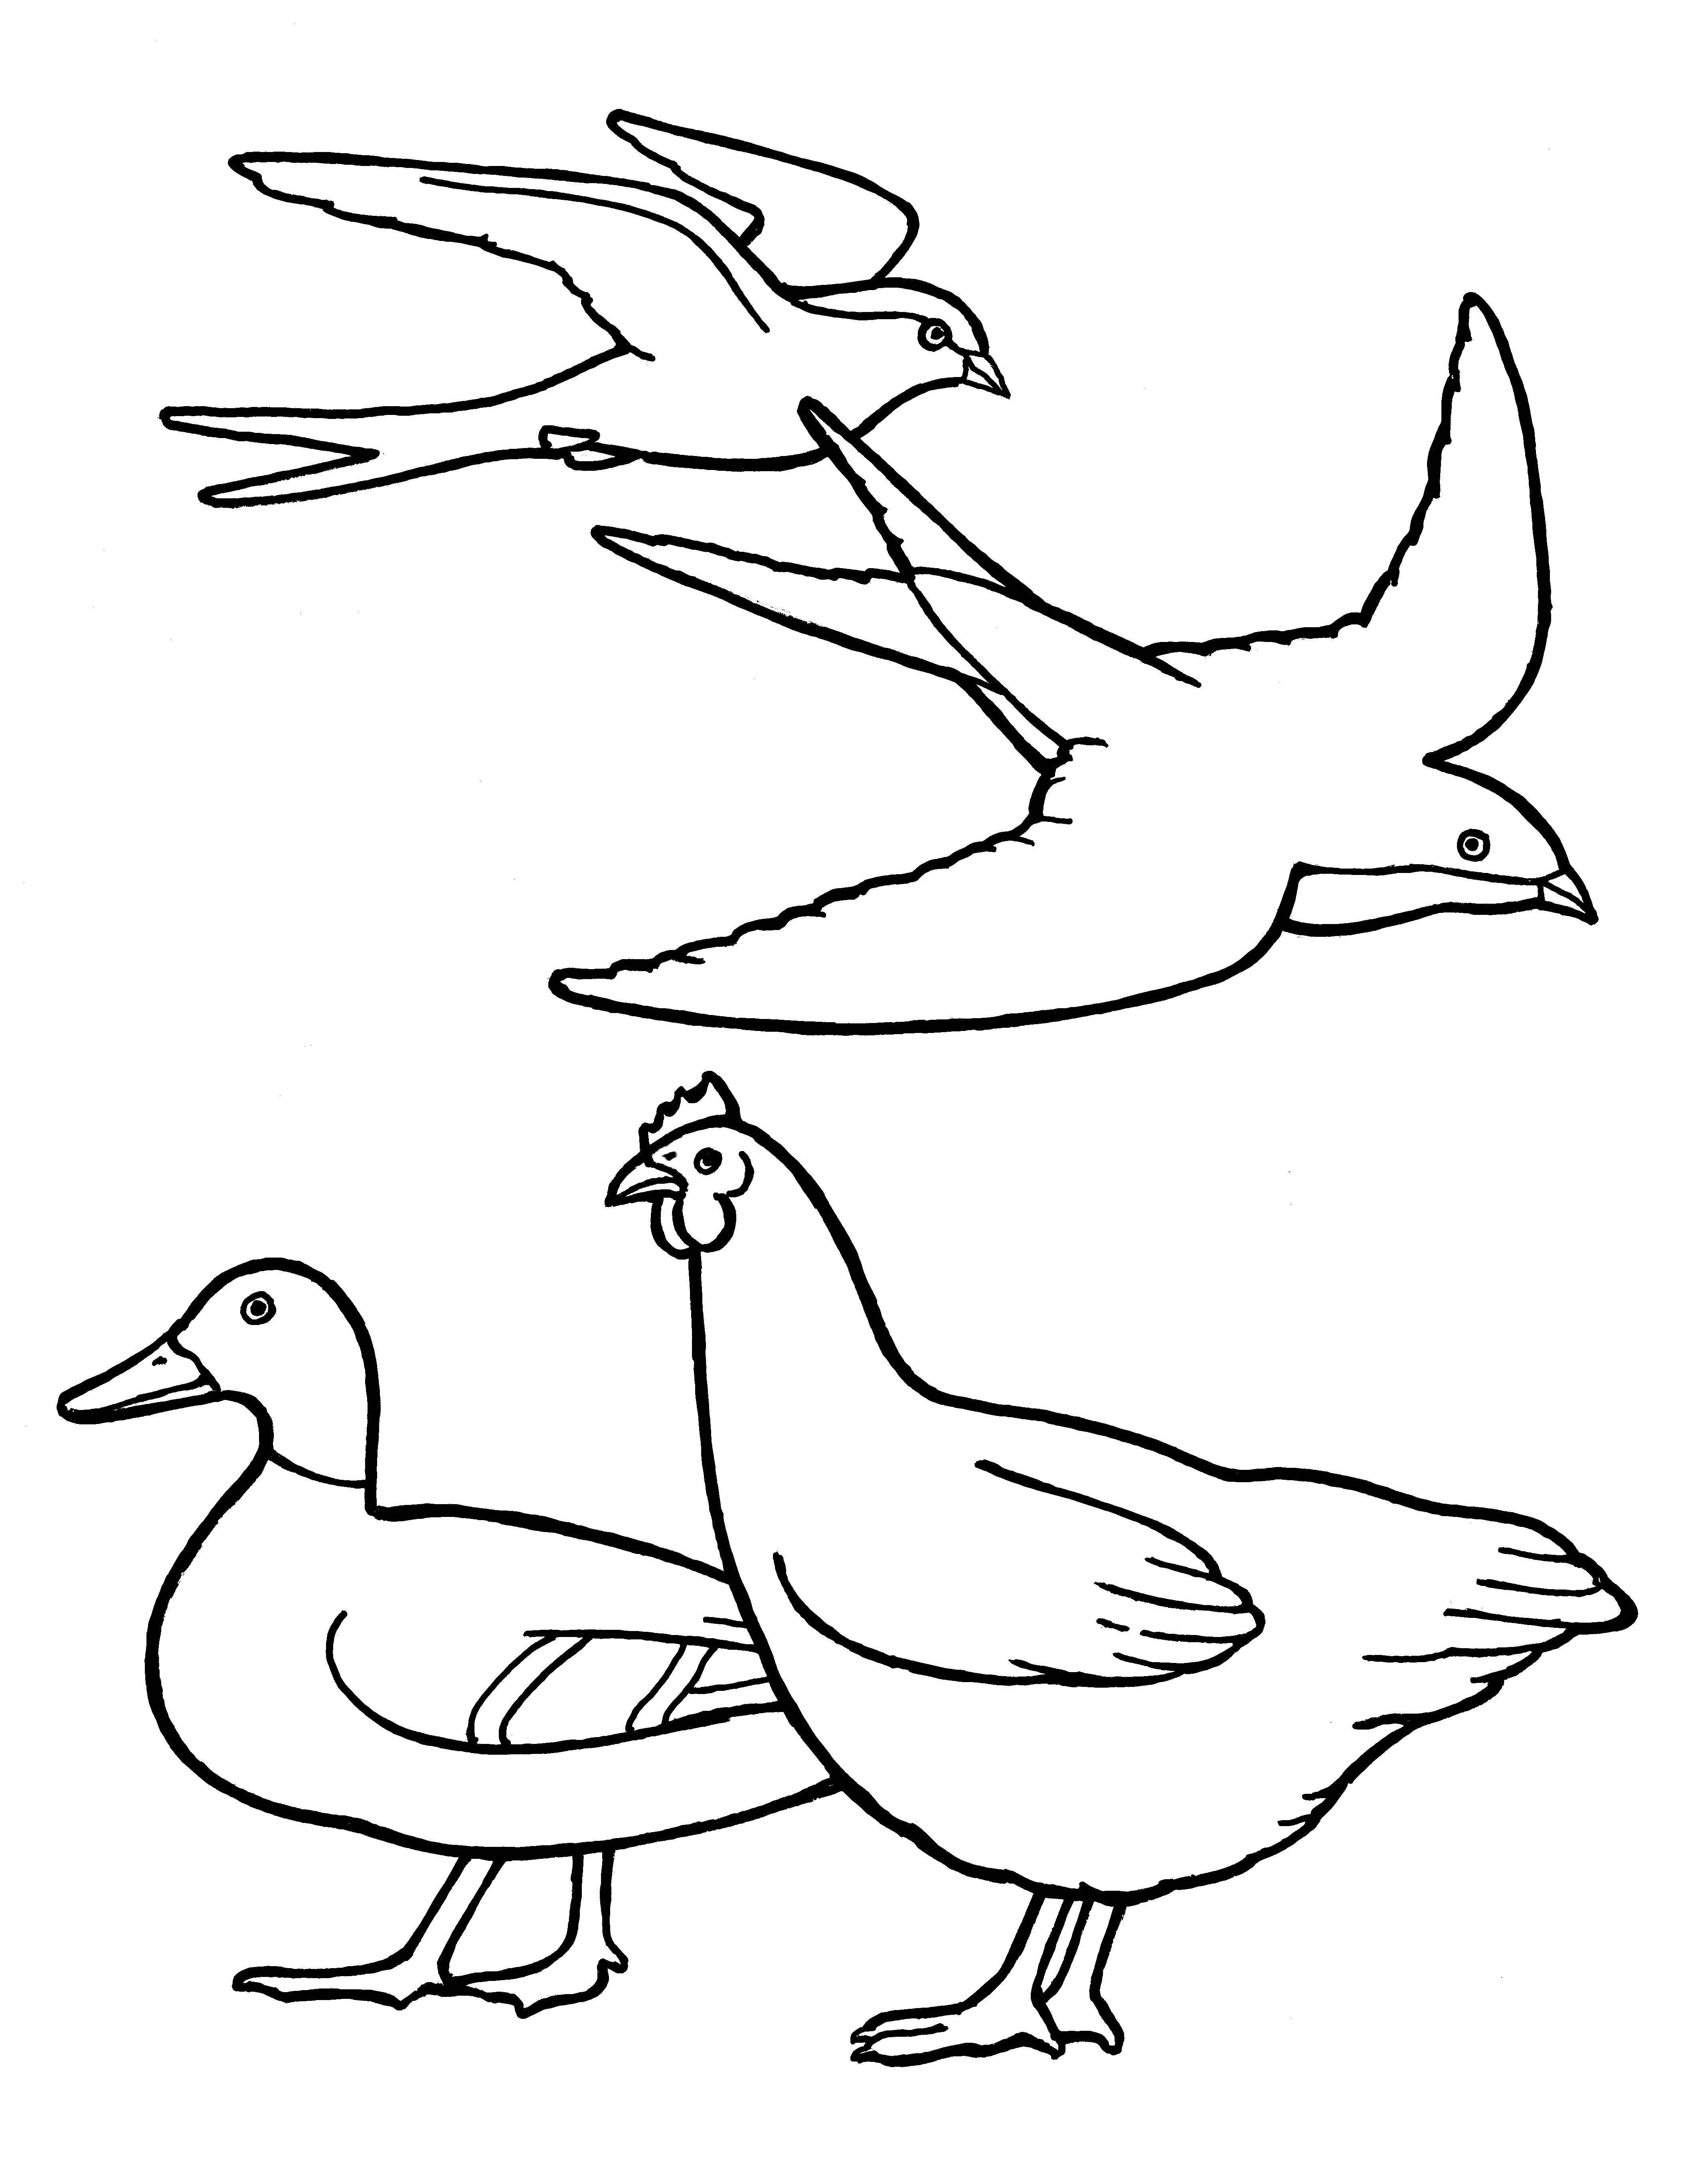 A line drawing of birds from the nursery manual Behold Your Little Ones (2008), page 35.